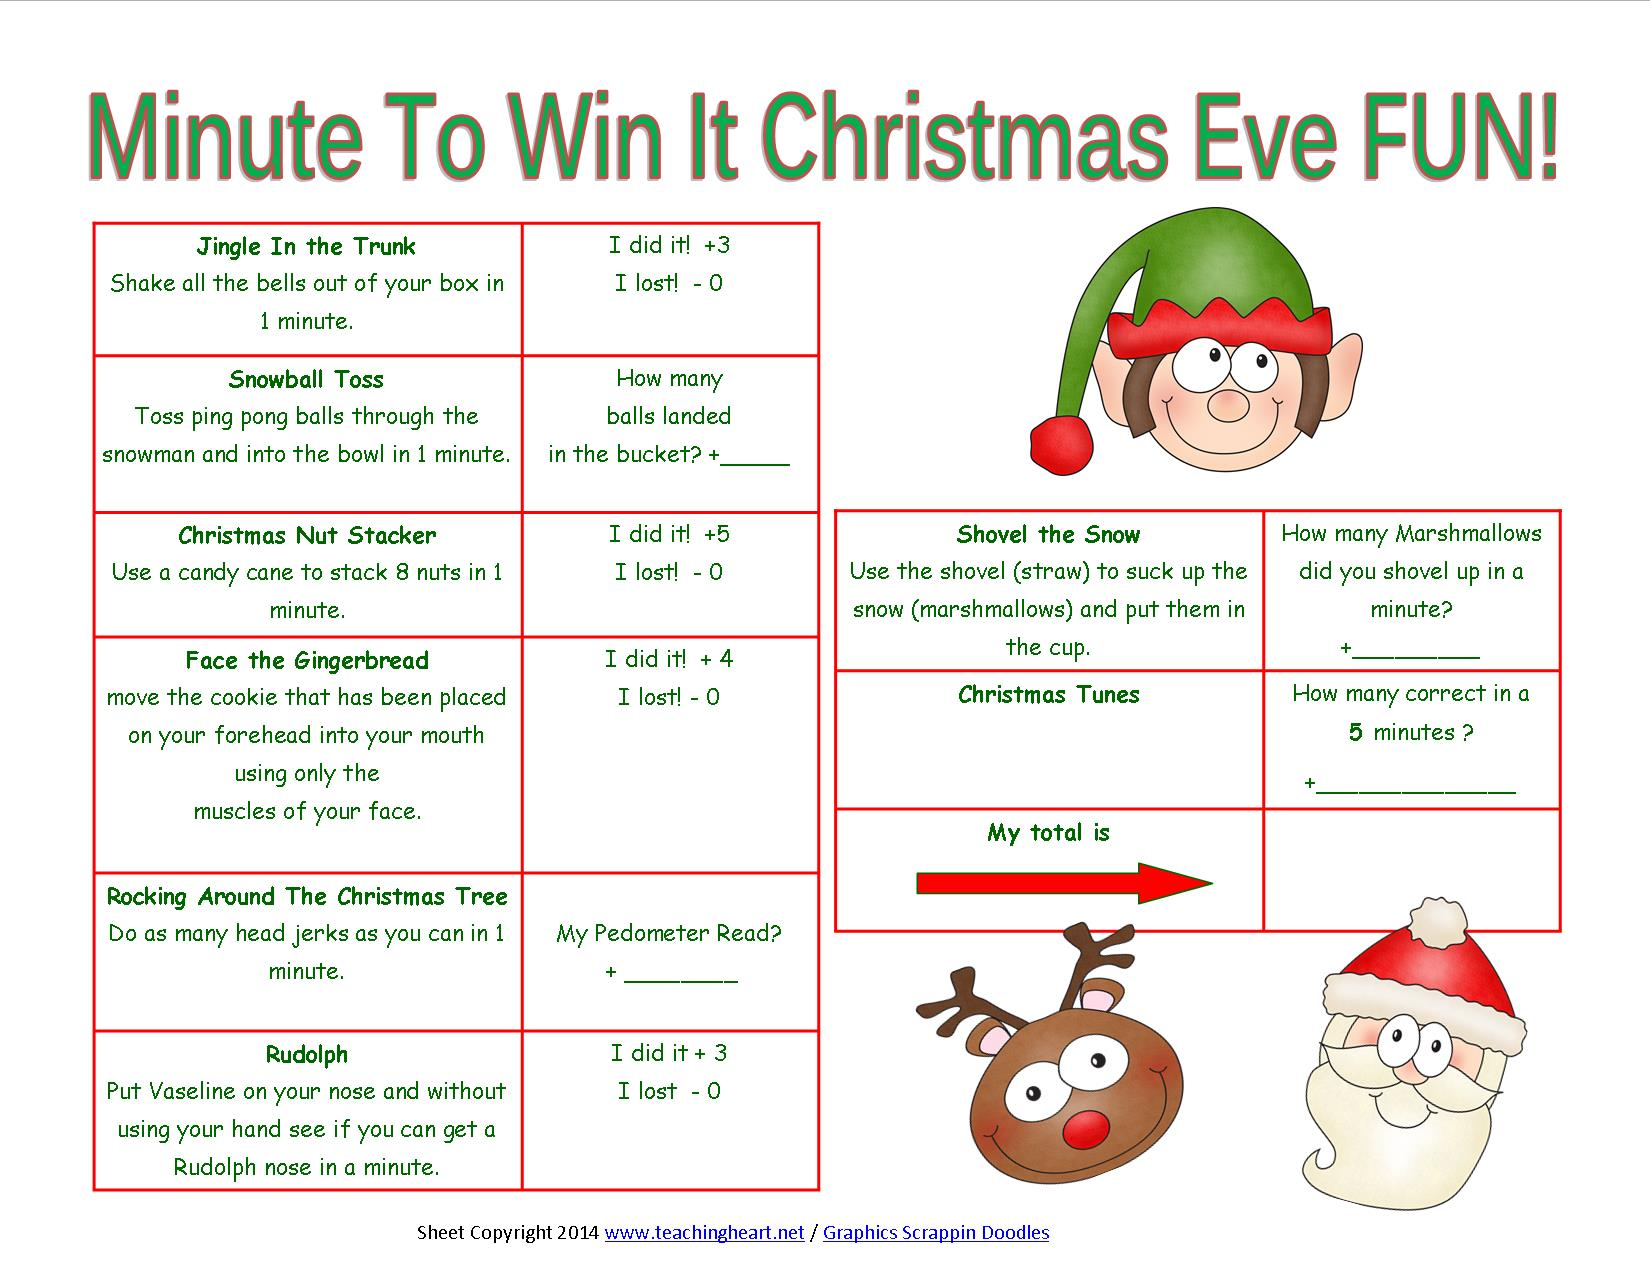 Minute To Win It Christmas.Christmas Printables For Next Year Teaching Heart Blog